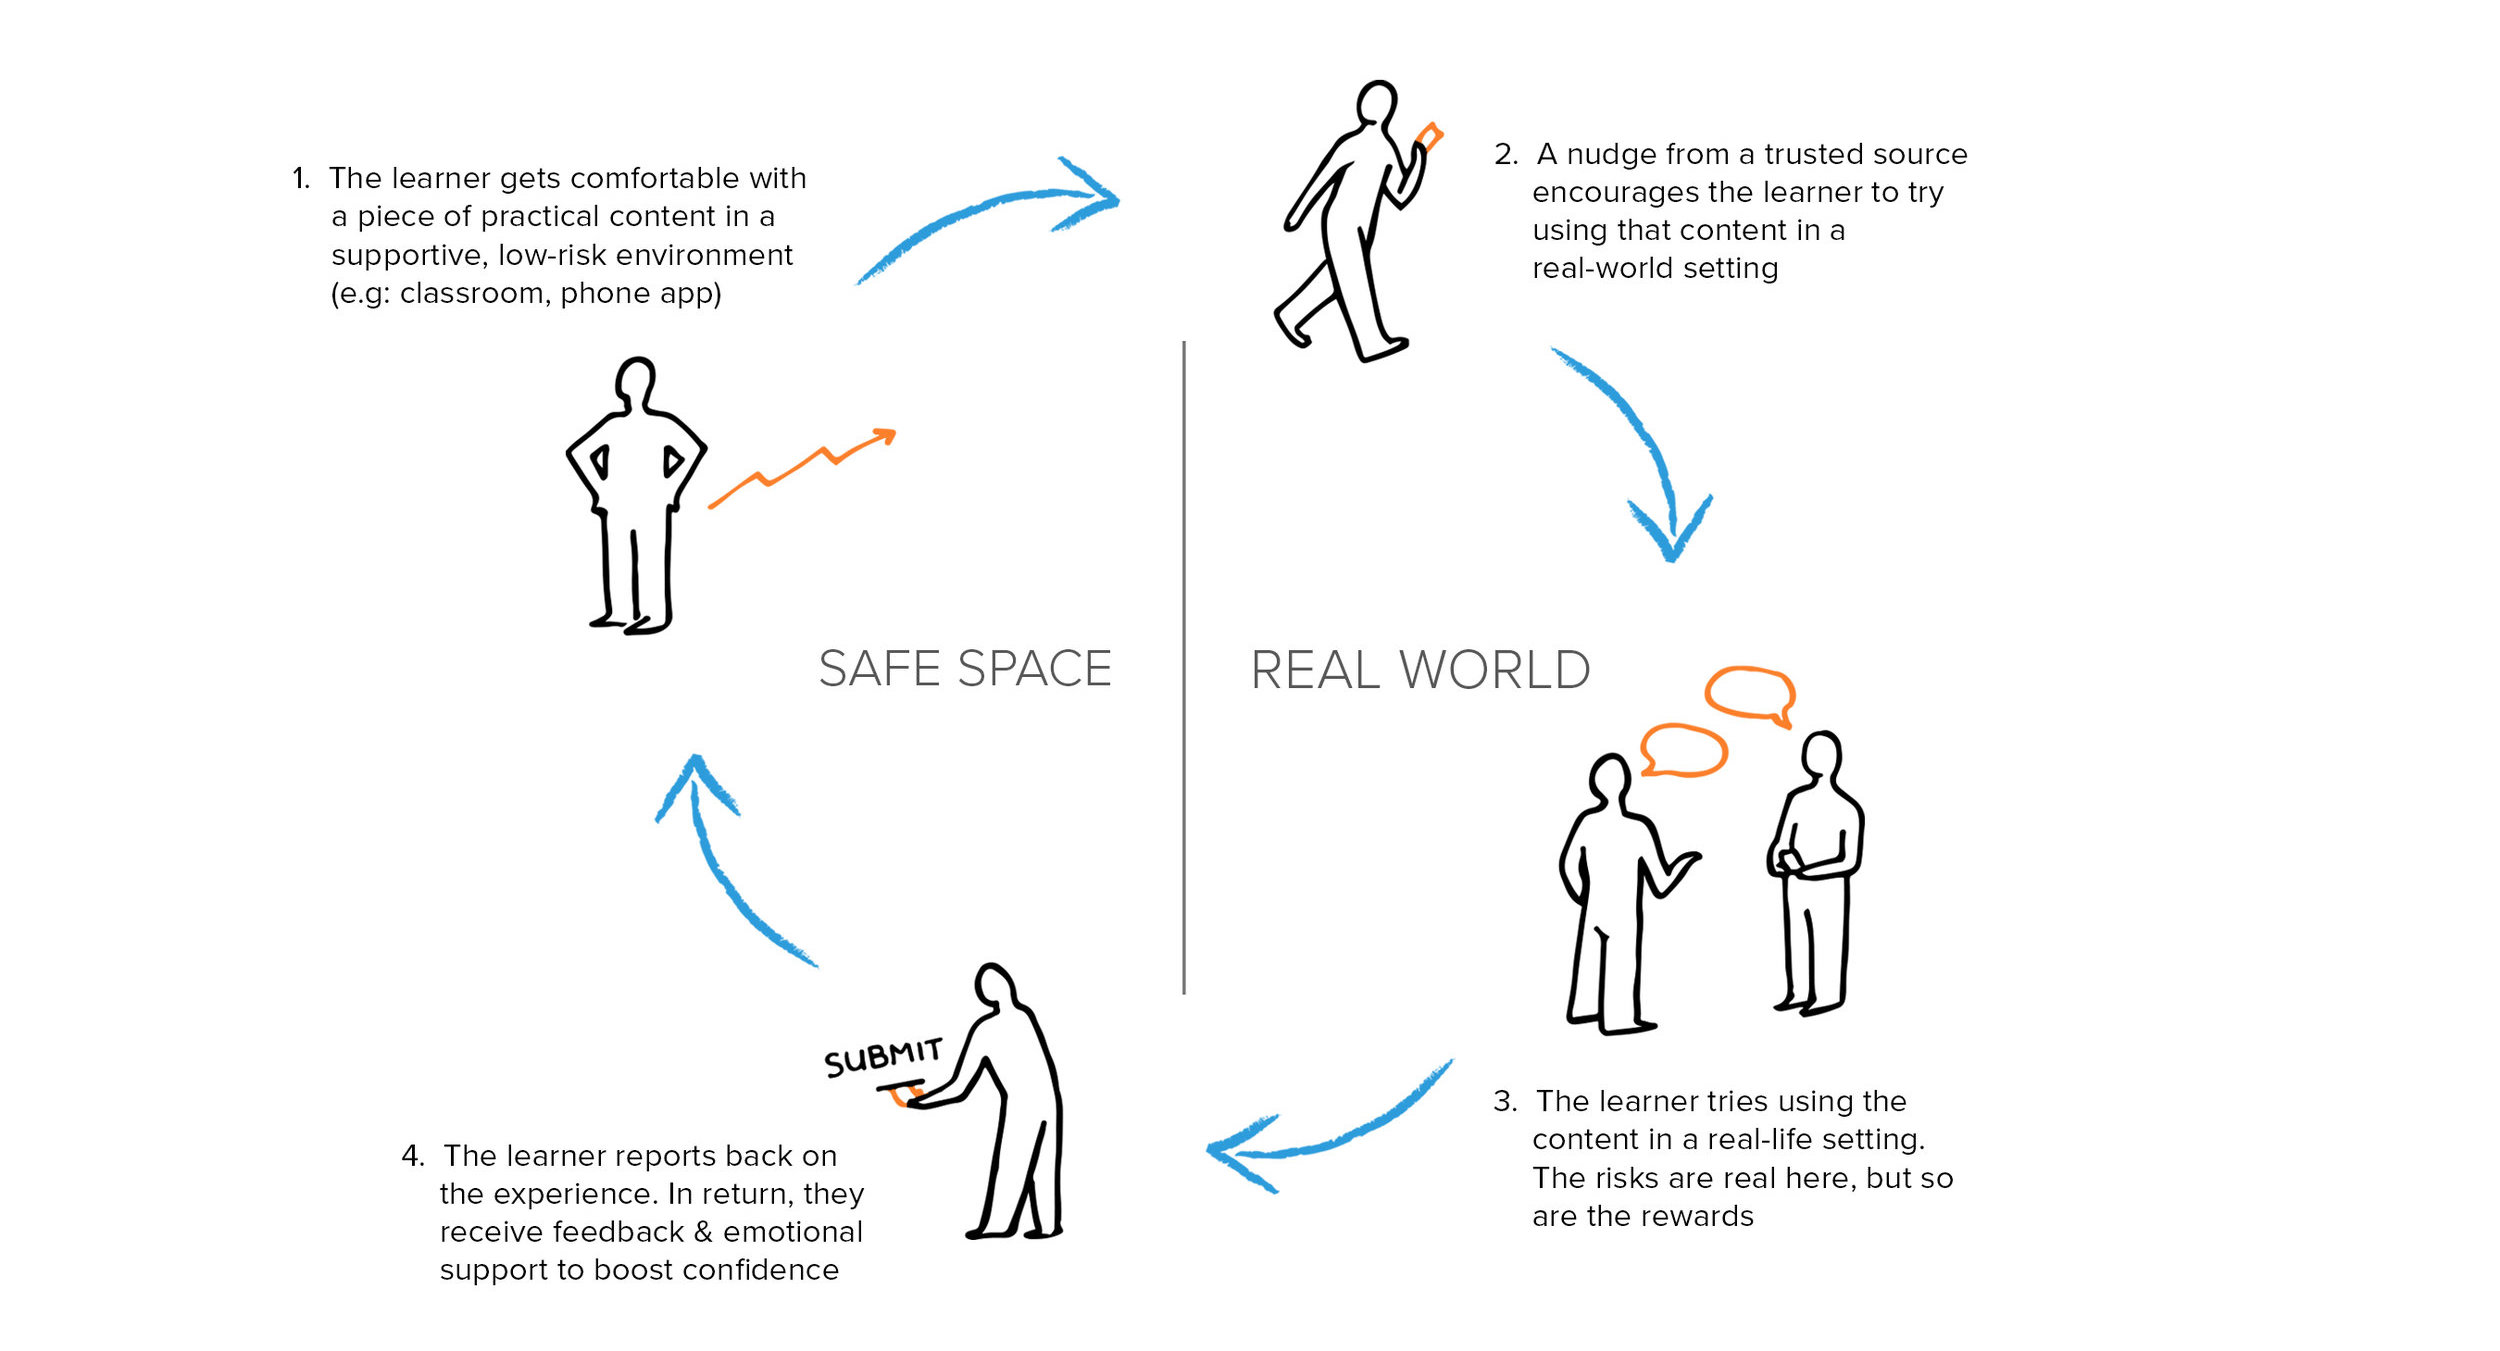 A key framework for the project. We imagined a virtuous cycle where learners incrementally engage in real-world practice by cultivating confidence in spaces where it's safe to fail.